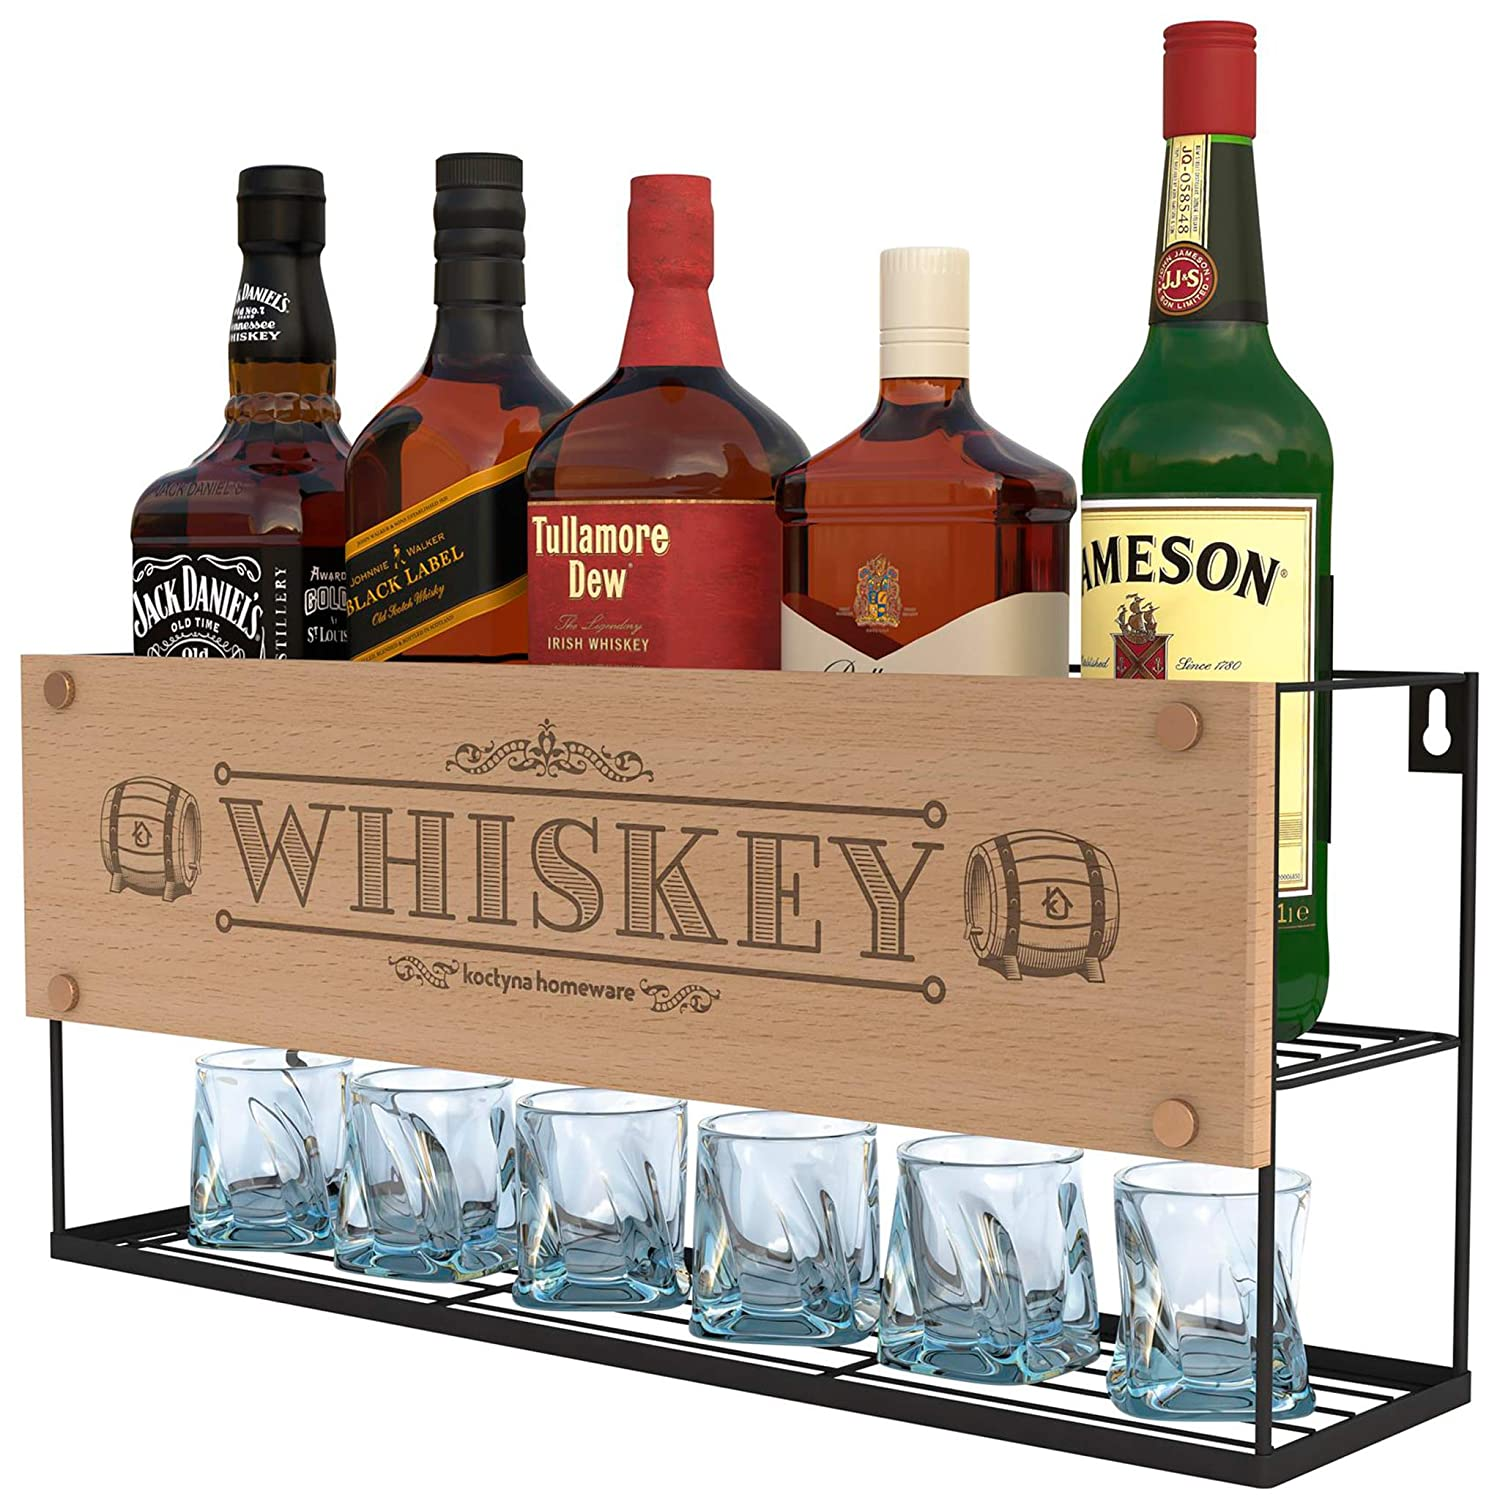 Wall Mounted Whiskey Racks | Bottle & Glass Holder | Whiskey Short Storage | Store Whiskey, Brandy, Сognac | Oak Whiskey Barrel Design | Whiskey Stones Holder | Home, Kitchen, Bar, Restorant Décor Restorant Décor koctyna homeware